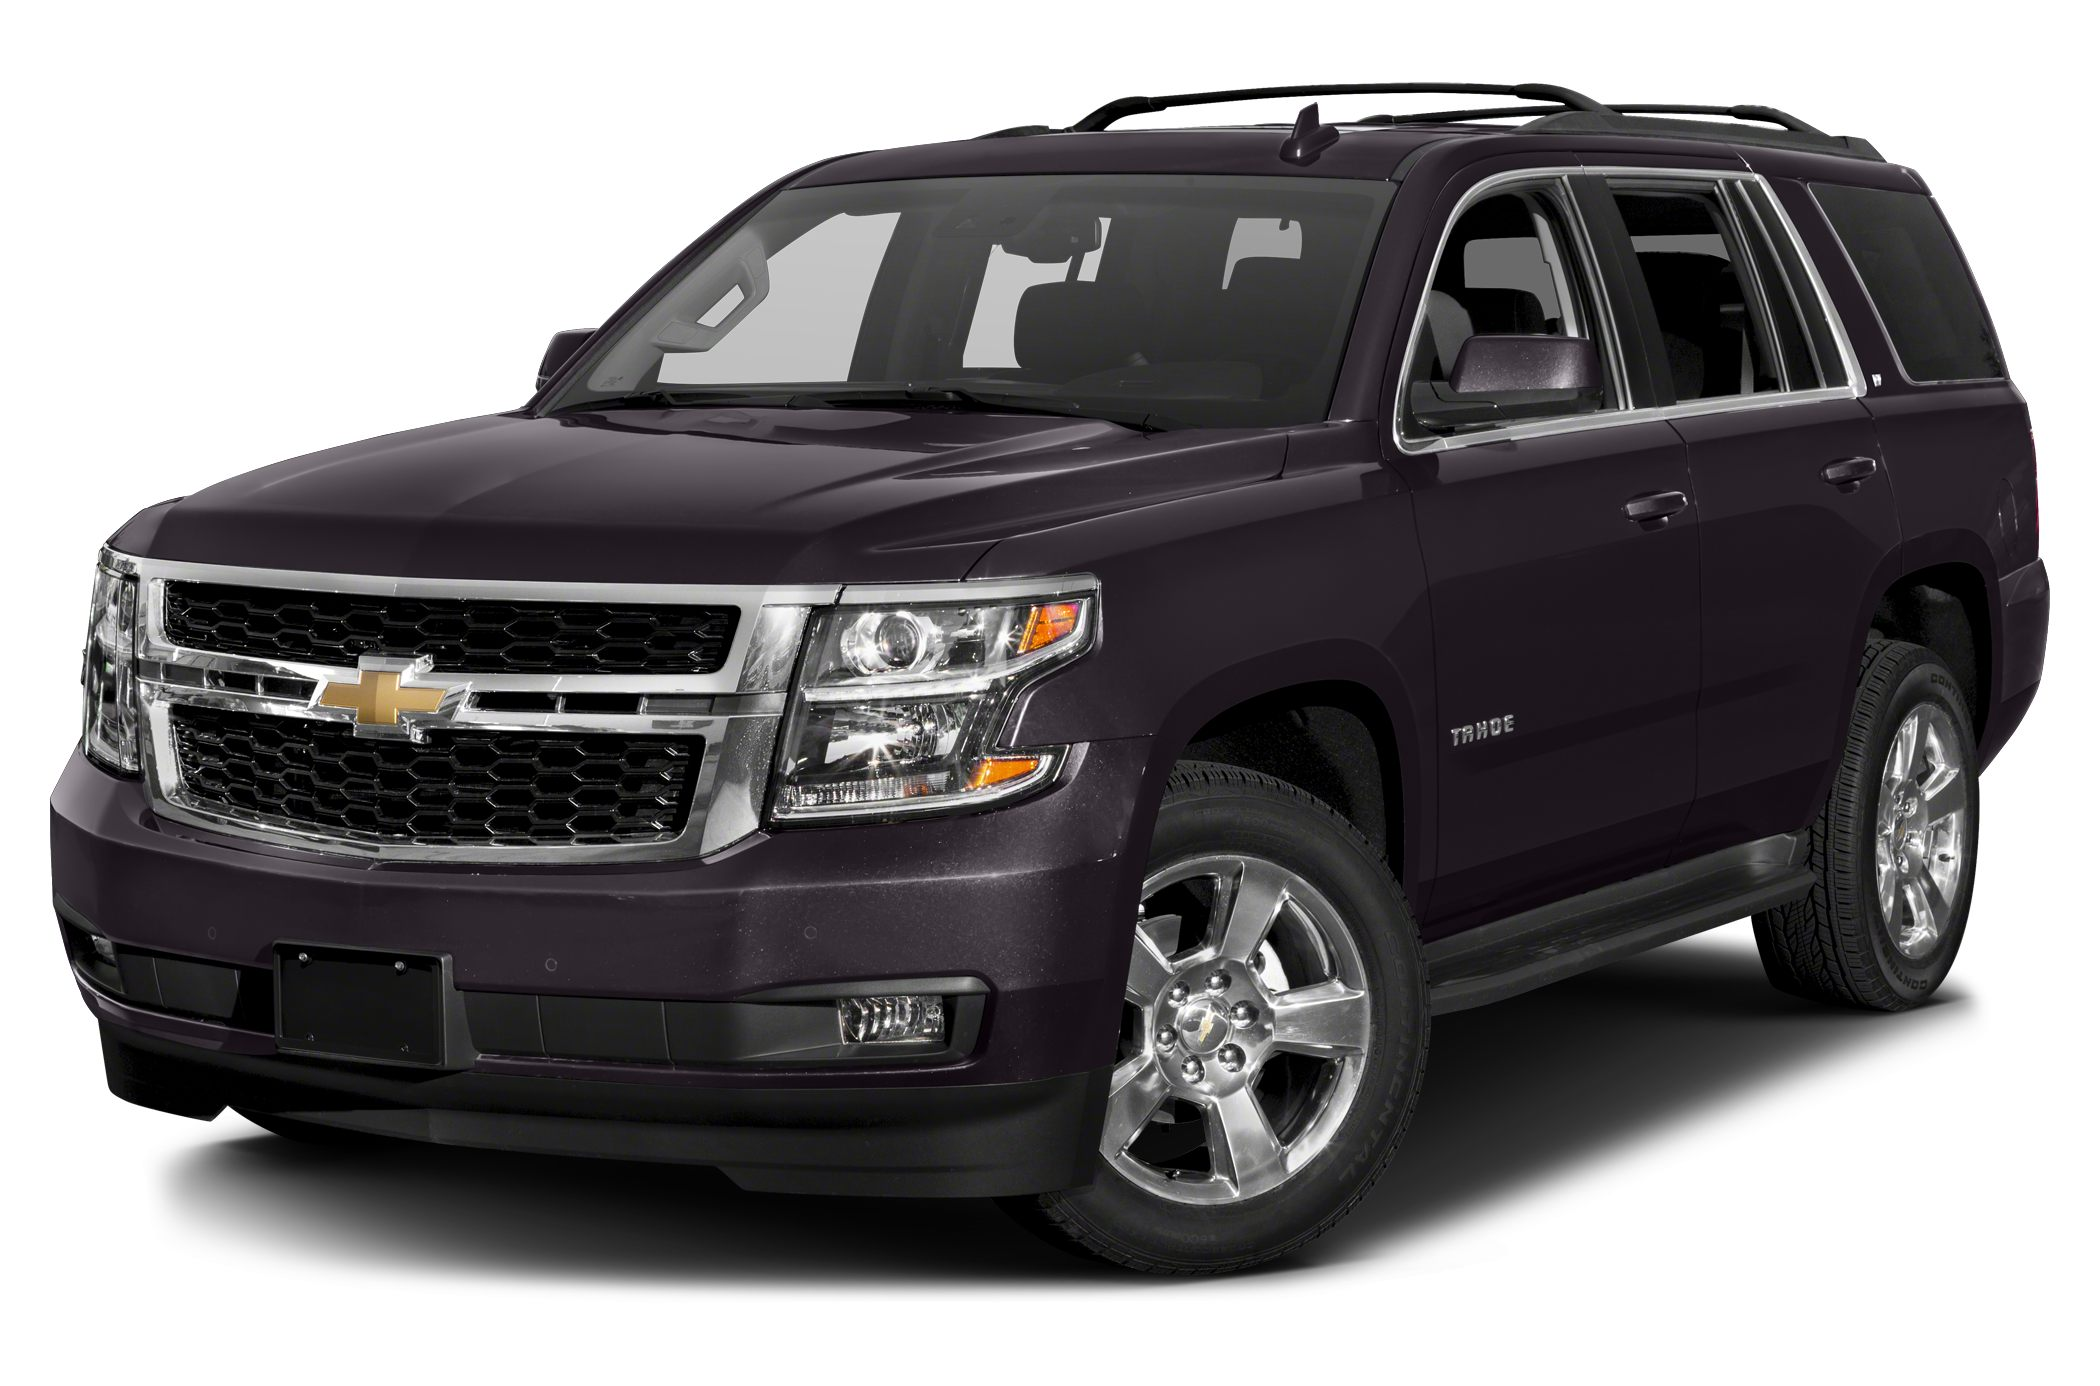 2017 chevy tahoe cincinnati oh mccluskey chevrolet. Black Bedroom Furniture Sets. Home Design Ideas